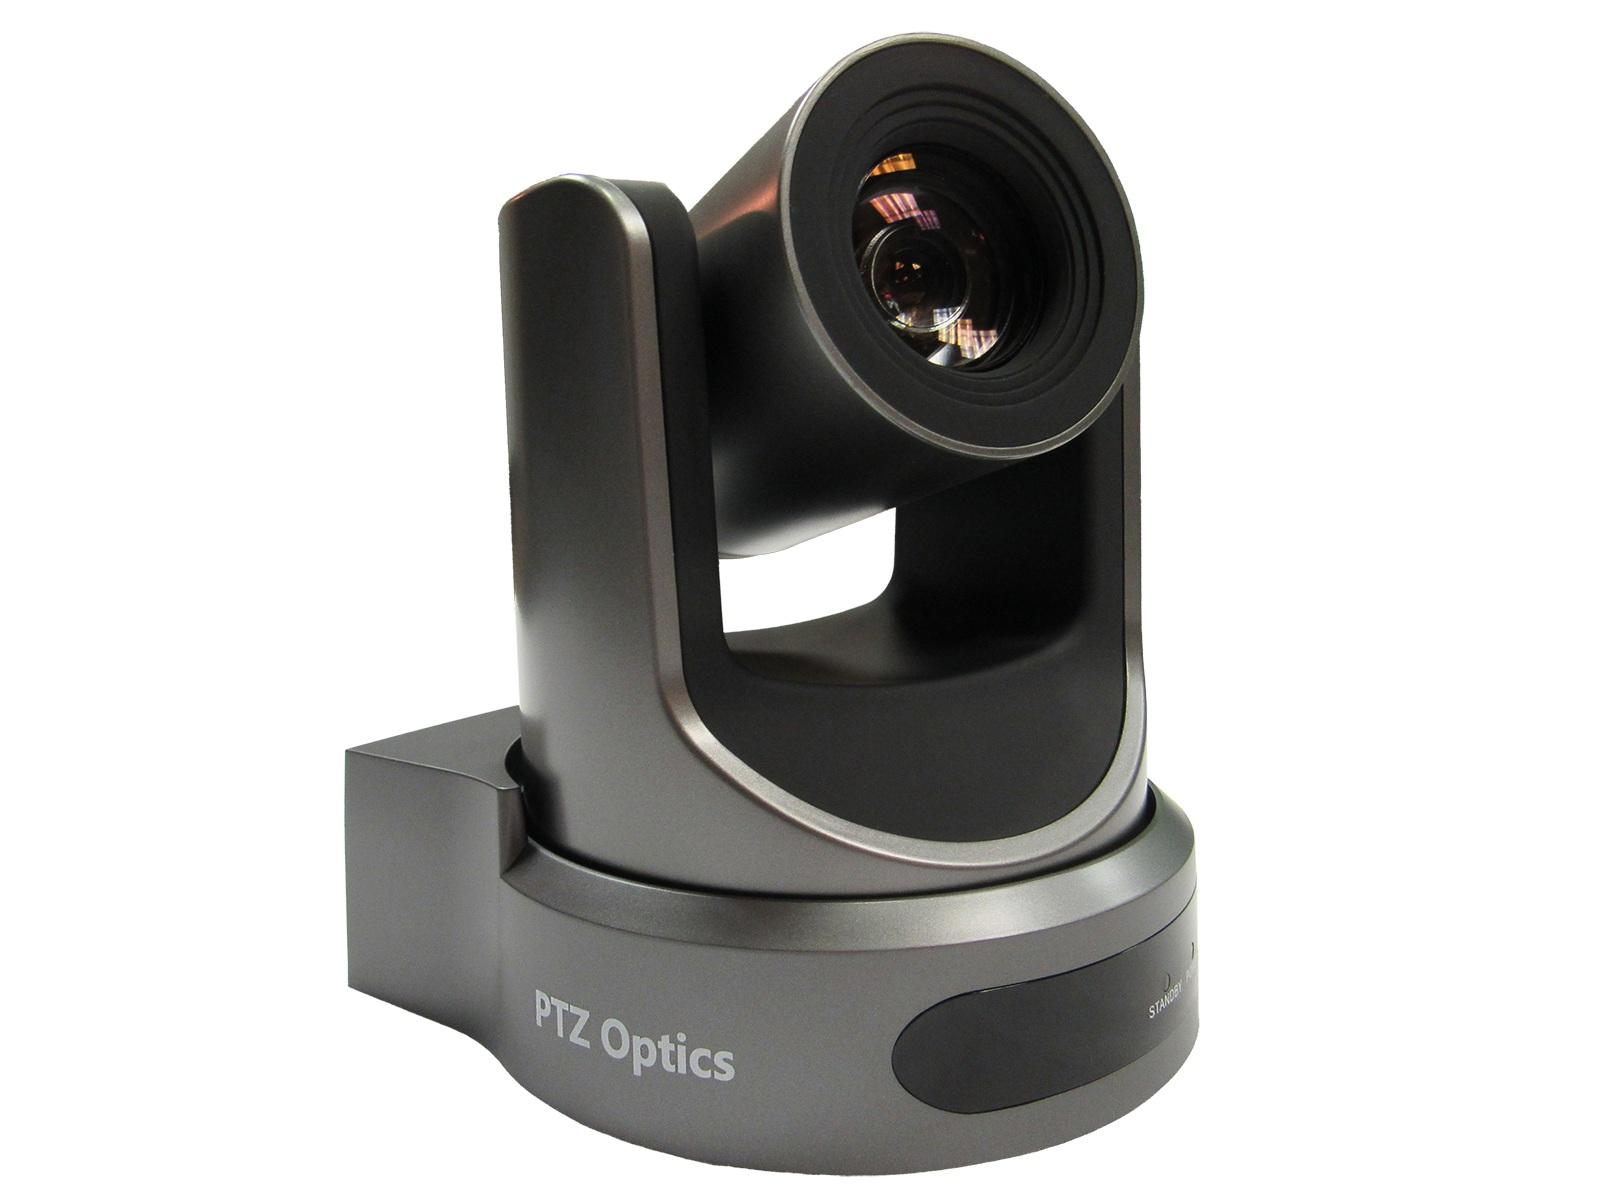 PTZOptics PT20X-USB-GY-G2 20X USB 3.0 HDMI Live Streaming Camera (Gray)